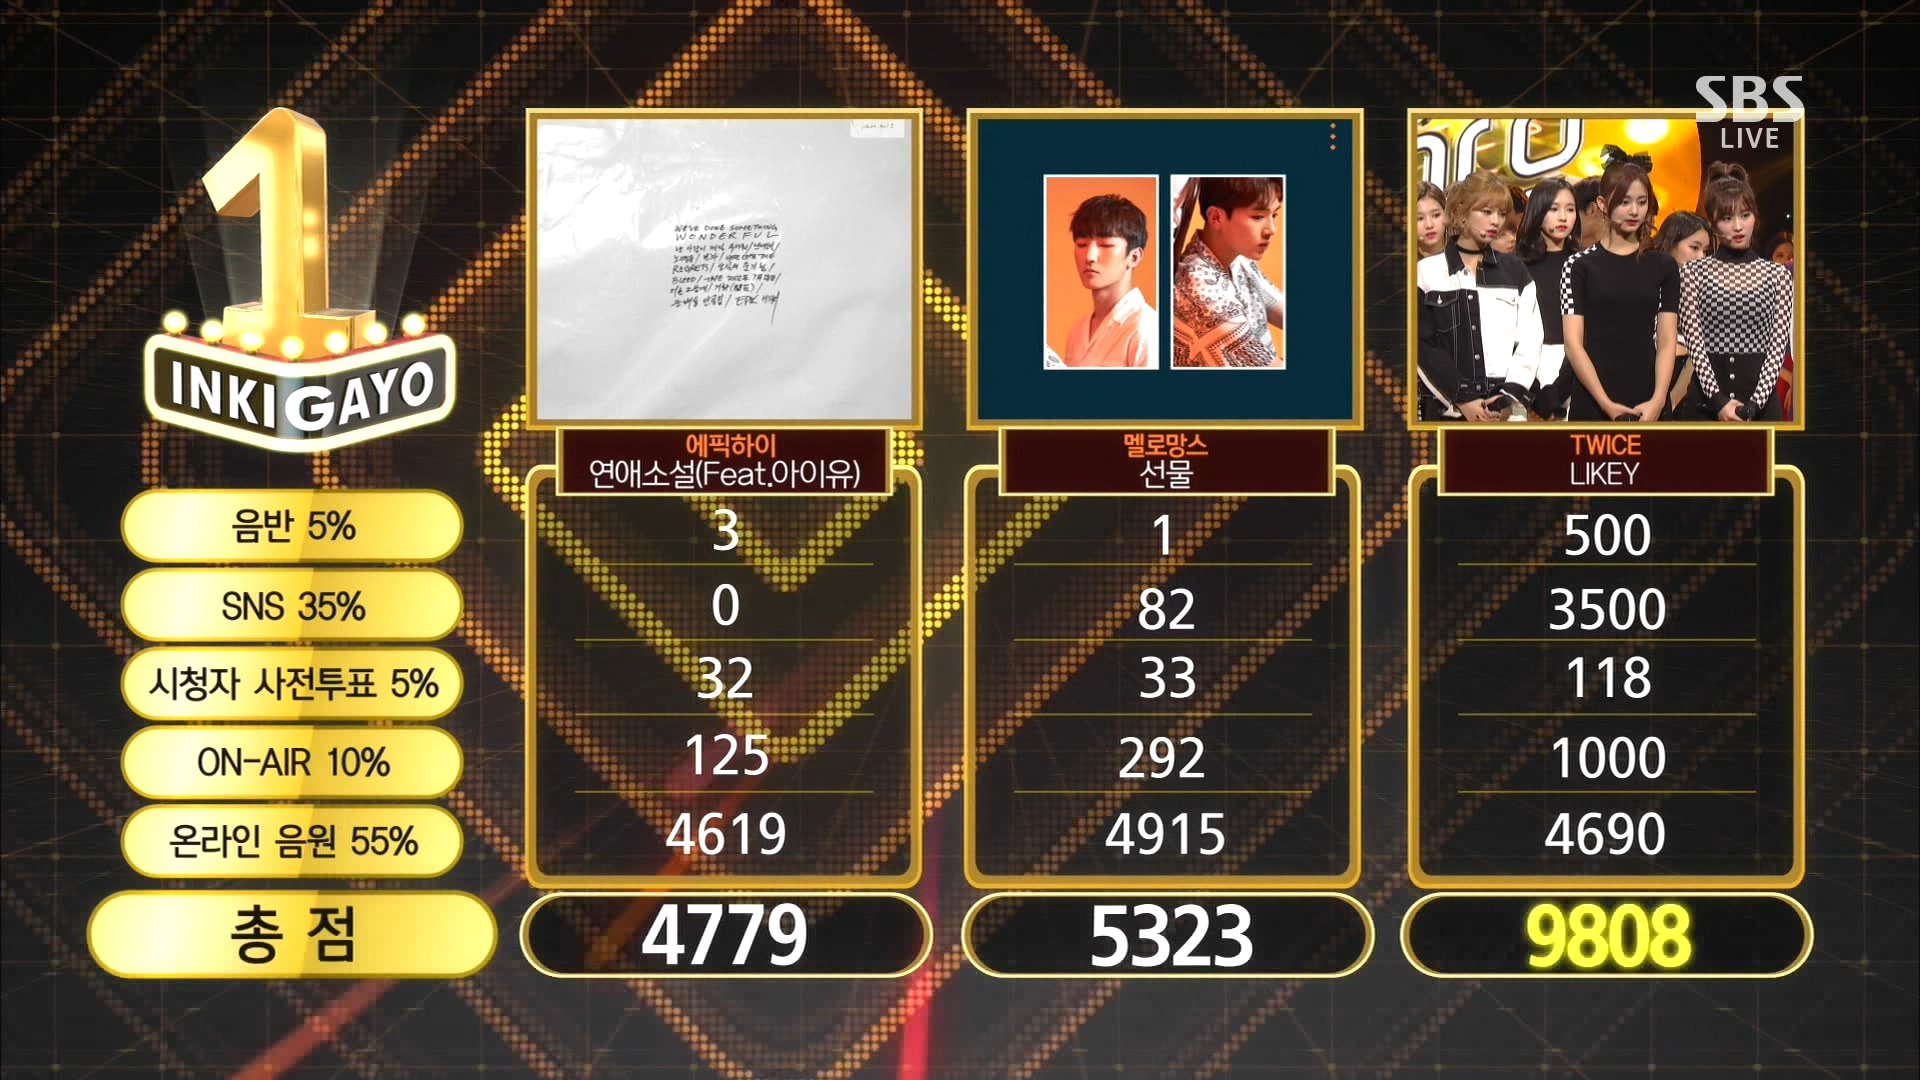 """Watch: TWICE Takes 4th Win For """"Likey"""" On """"Inkigayo""""; Performances By Super Junior, Block B, EXID, And More!"""